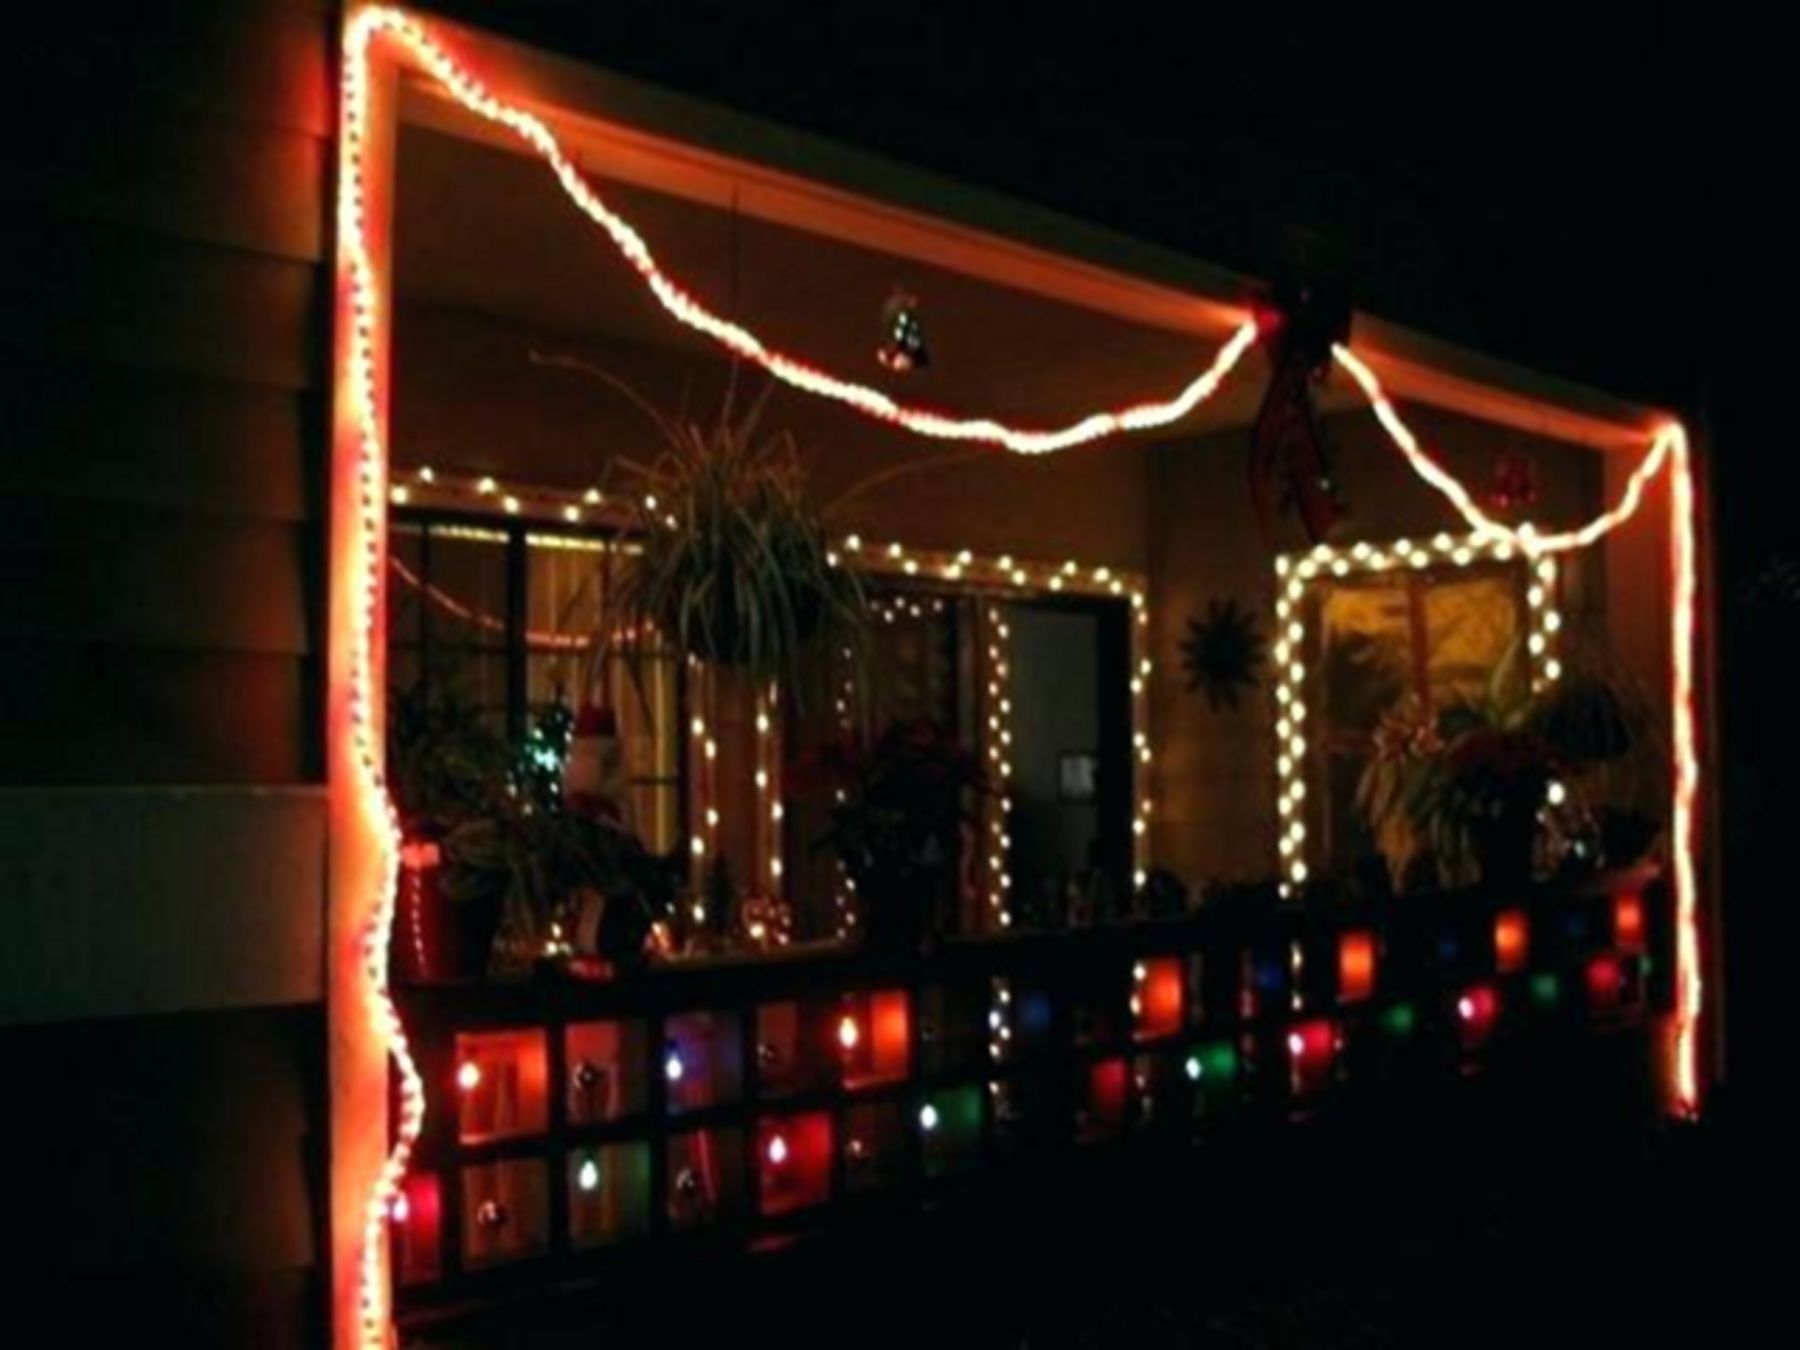 20 Cool Christmas Lights Decorating Ideas For Balcony Decorating With Christmas Lights Christmas Lights Christmas House Lights